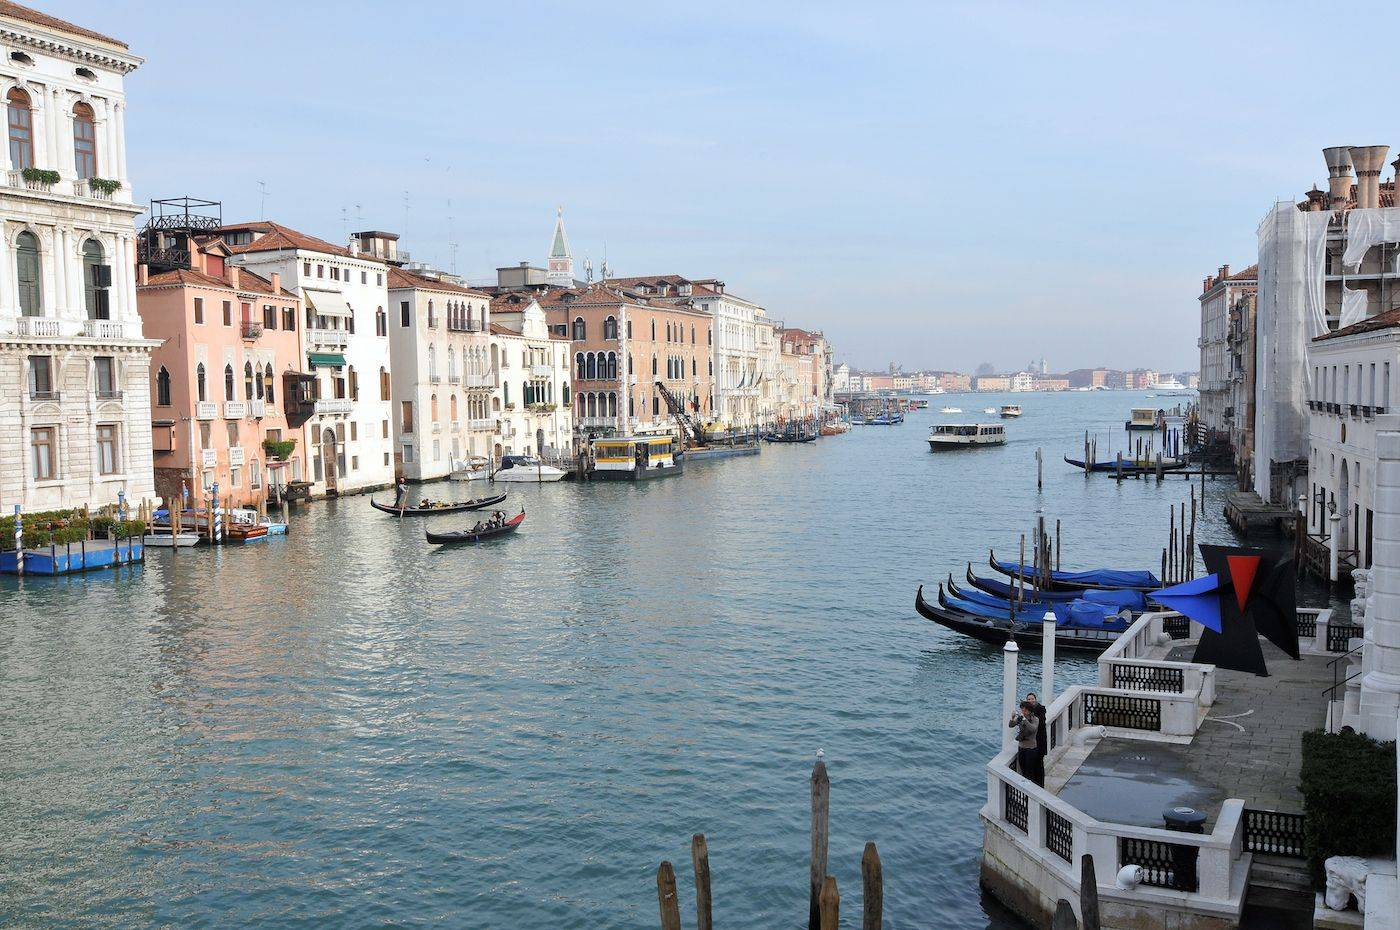 prospectice on the Grand Canal from the master bedroom